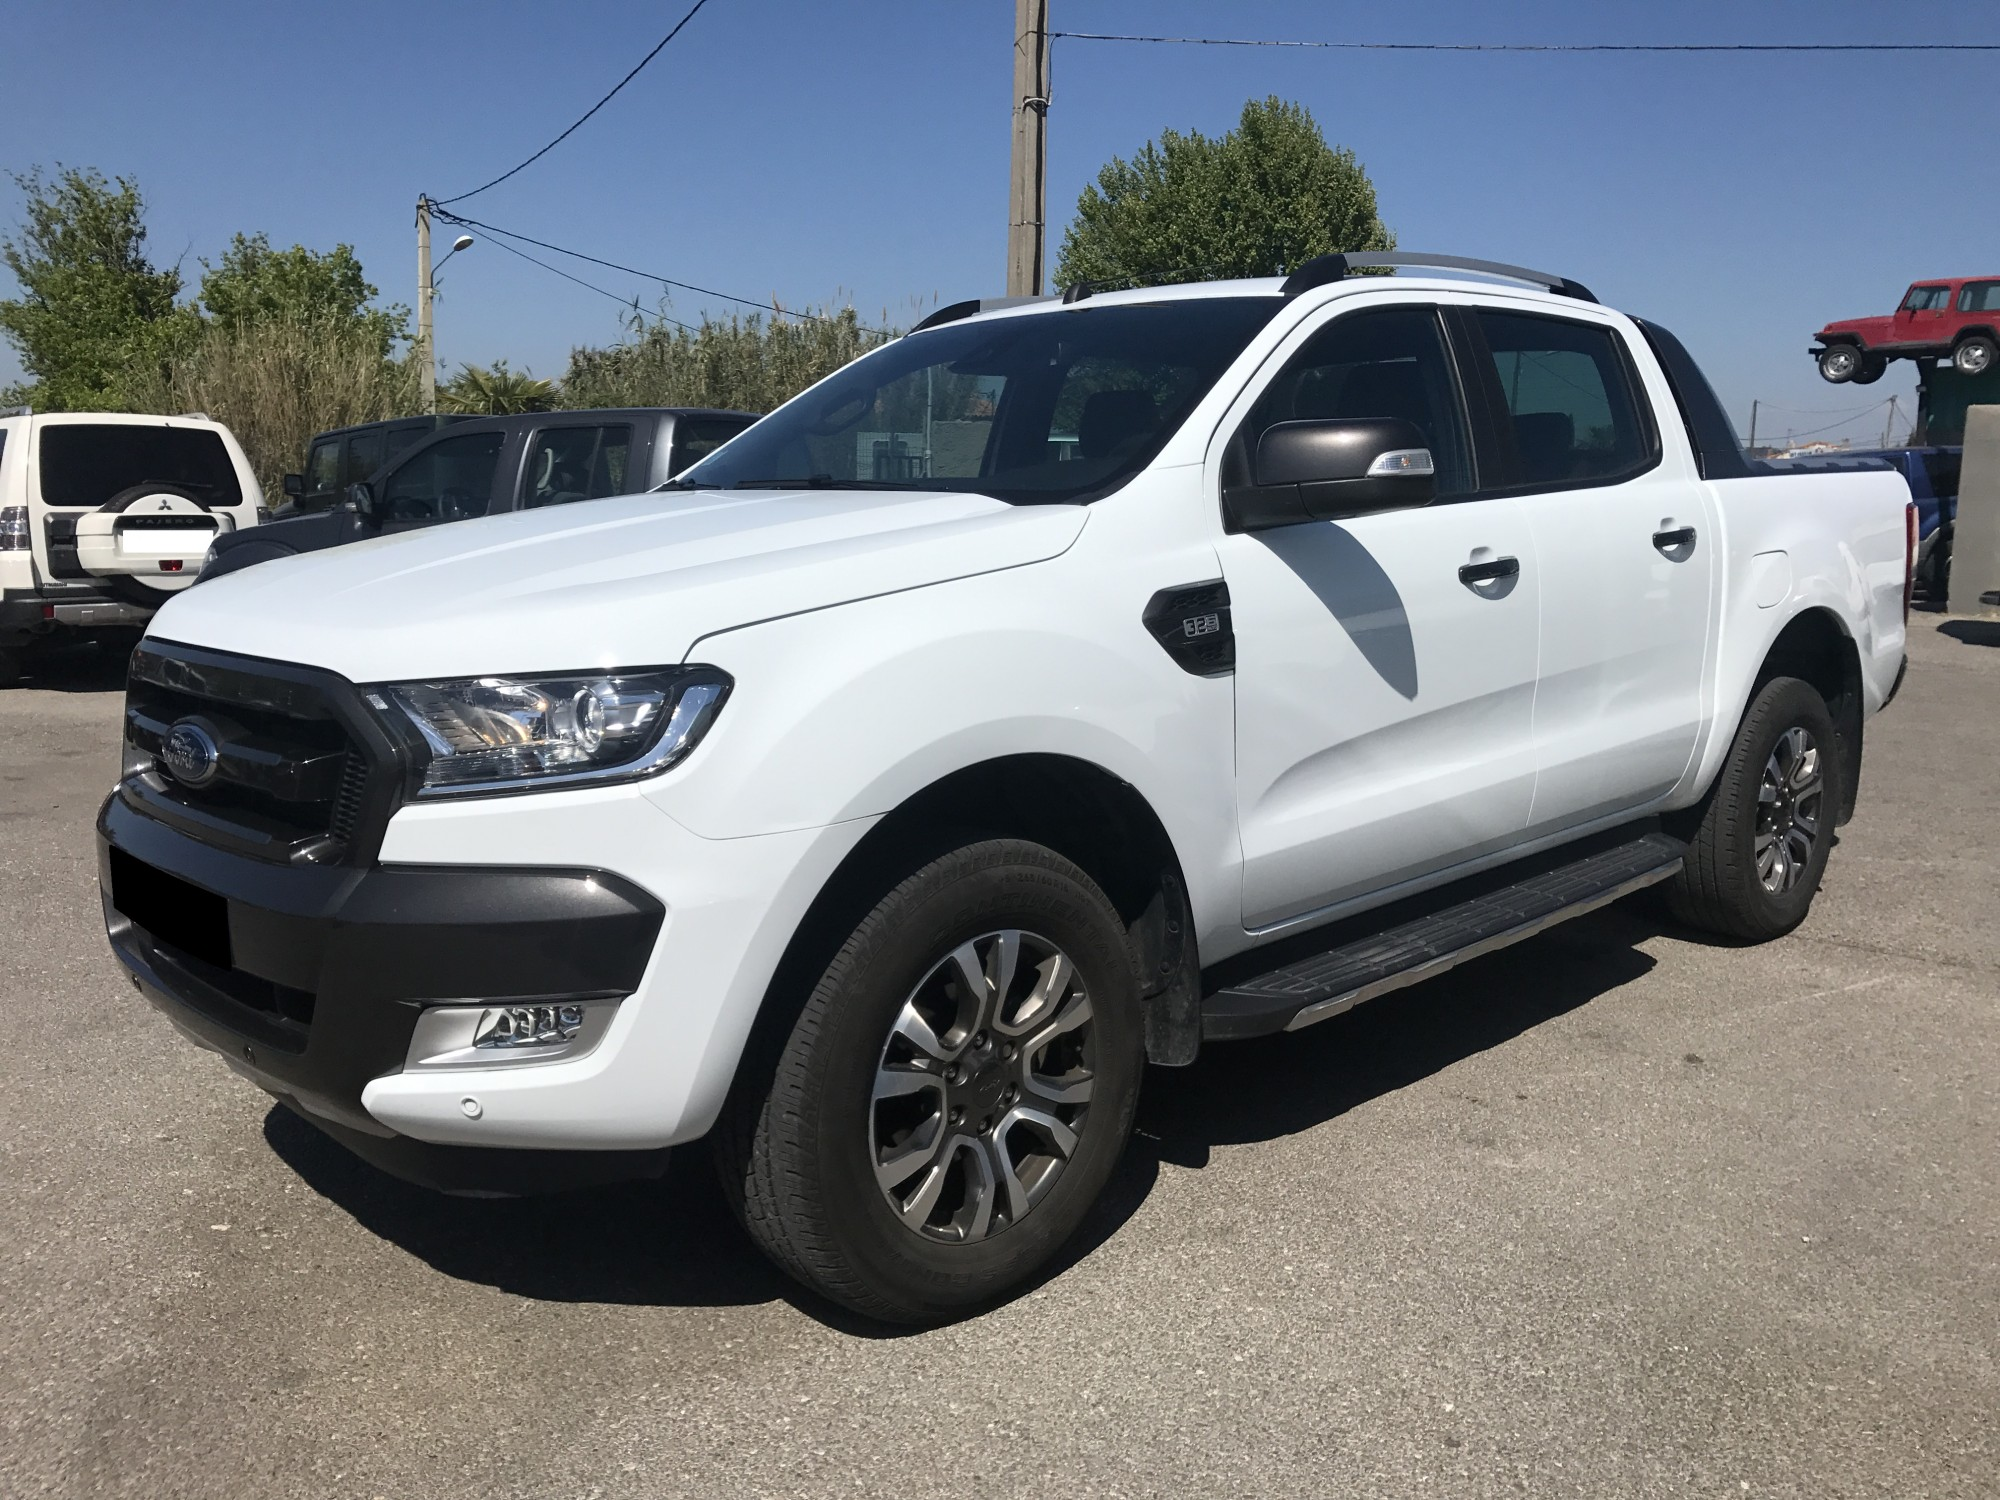 ford ranger 3 2 tdci 200 ch wildtrack bv6 auto de 2016 voir dans les bouches du rh ne proche. Black Bedroom Furniture Sets. Home Design Ideas